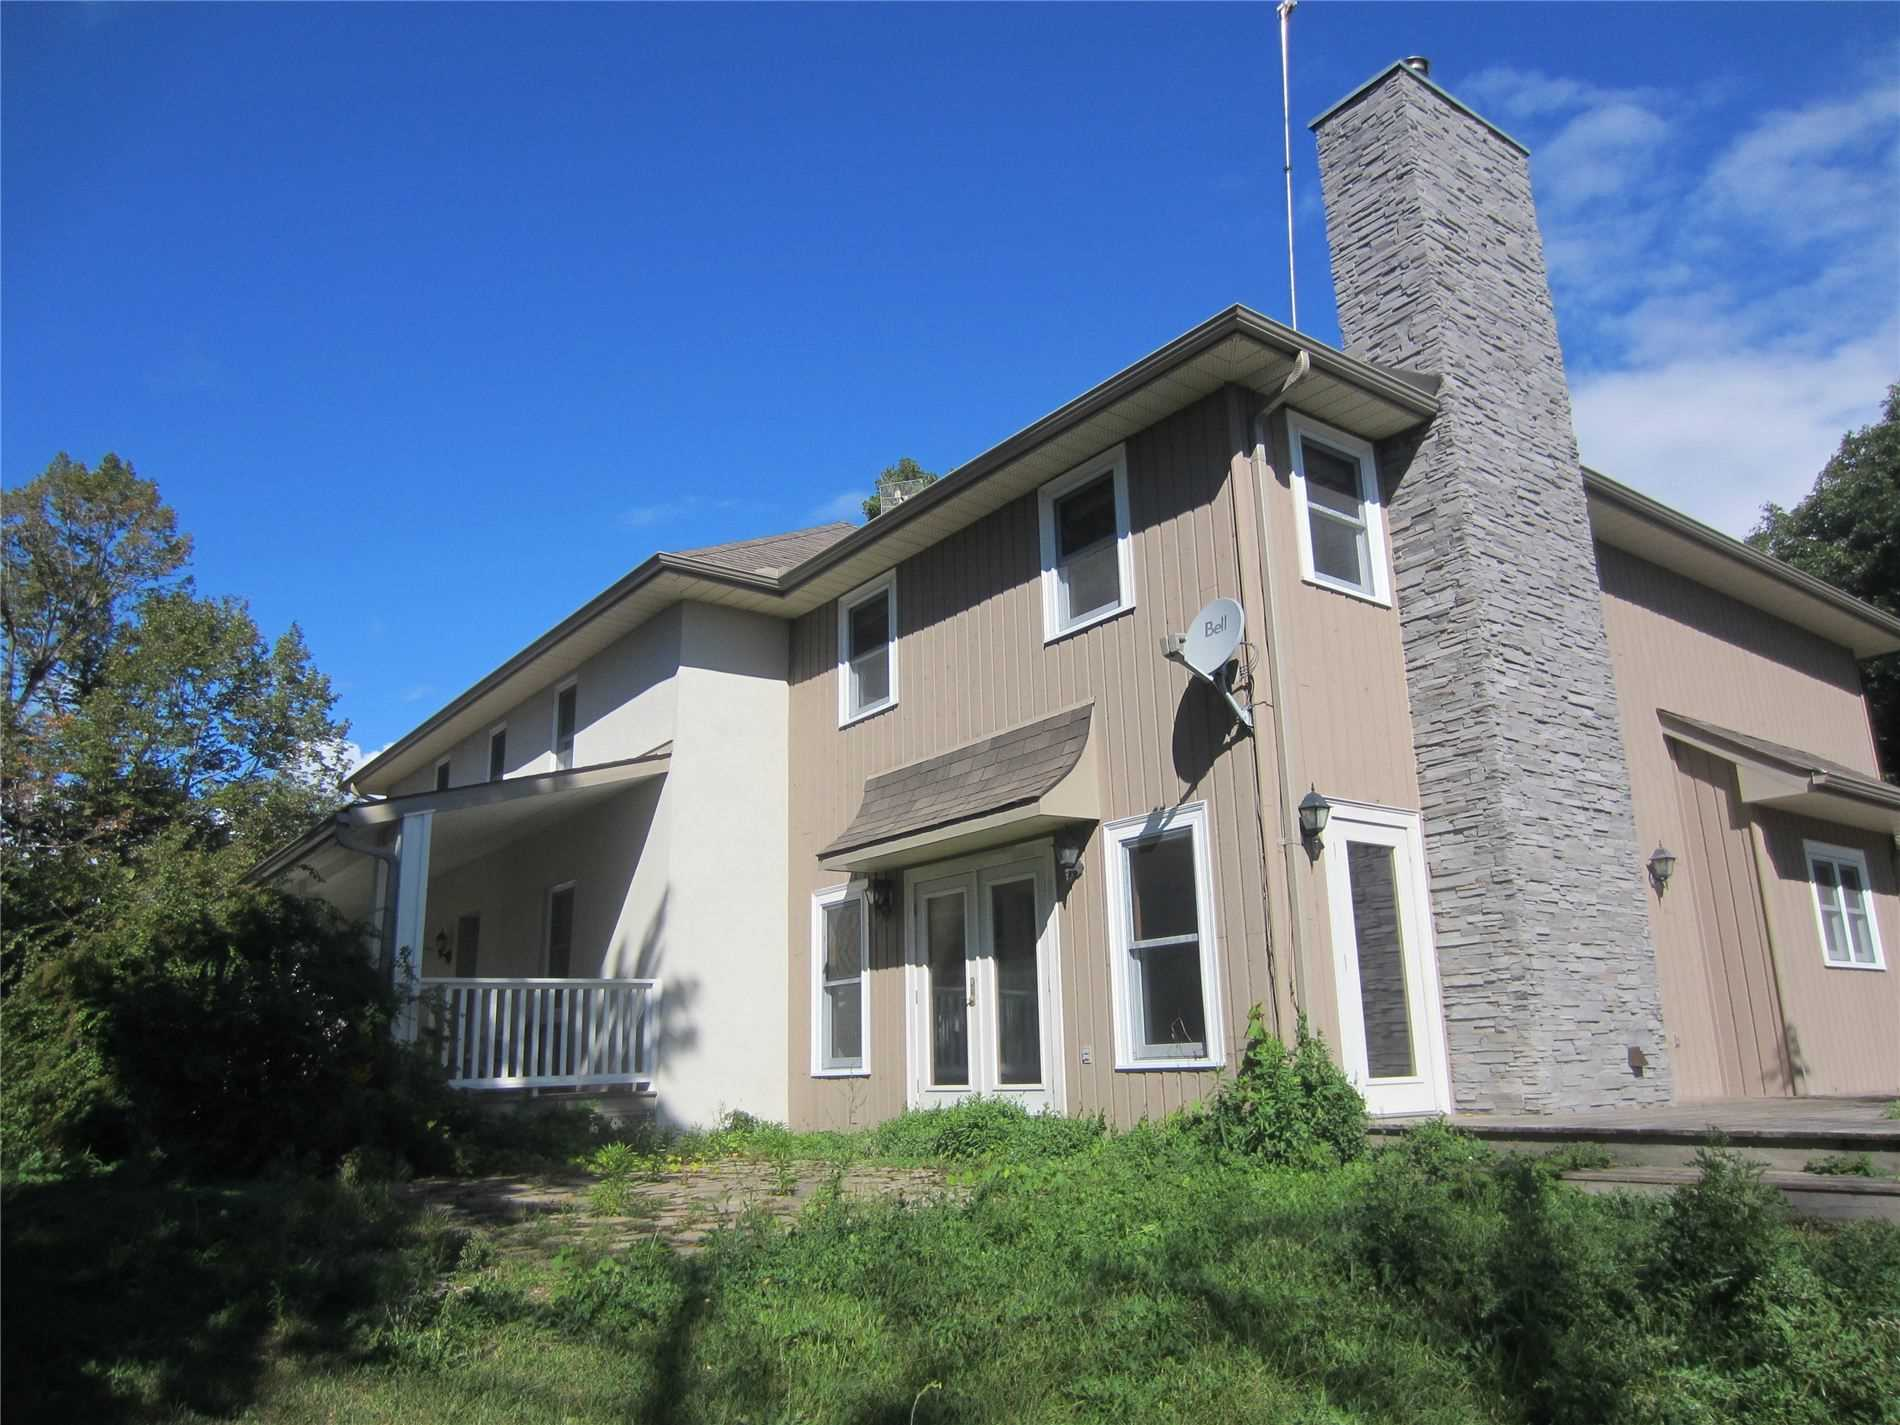 Detached house For Lease In Bradford West Gwillimbury